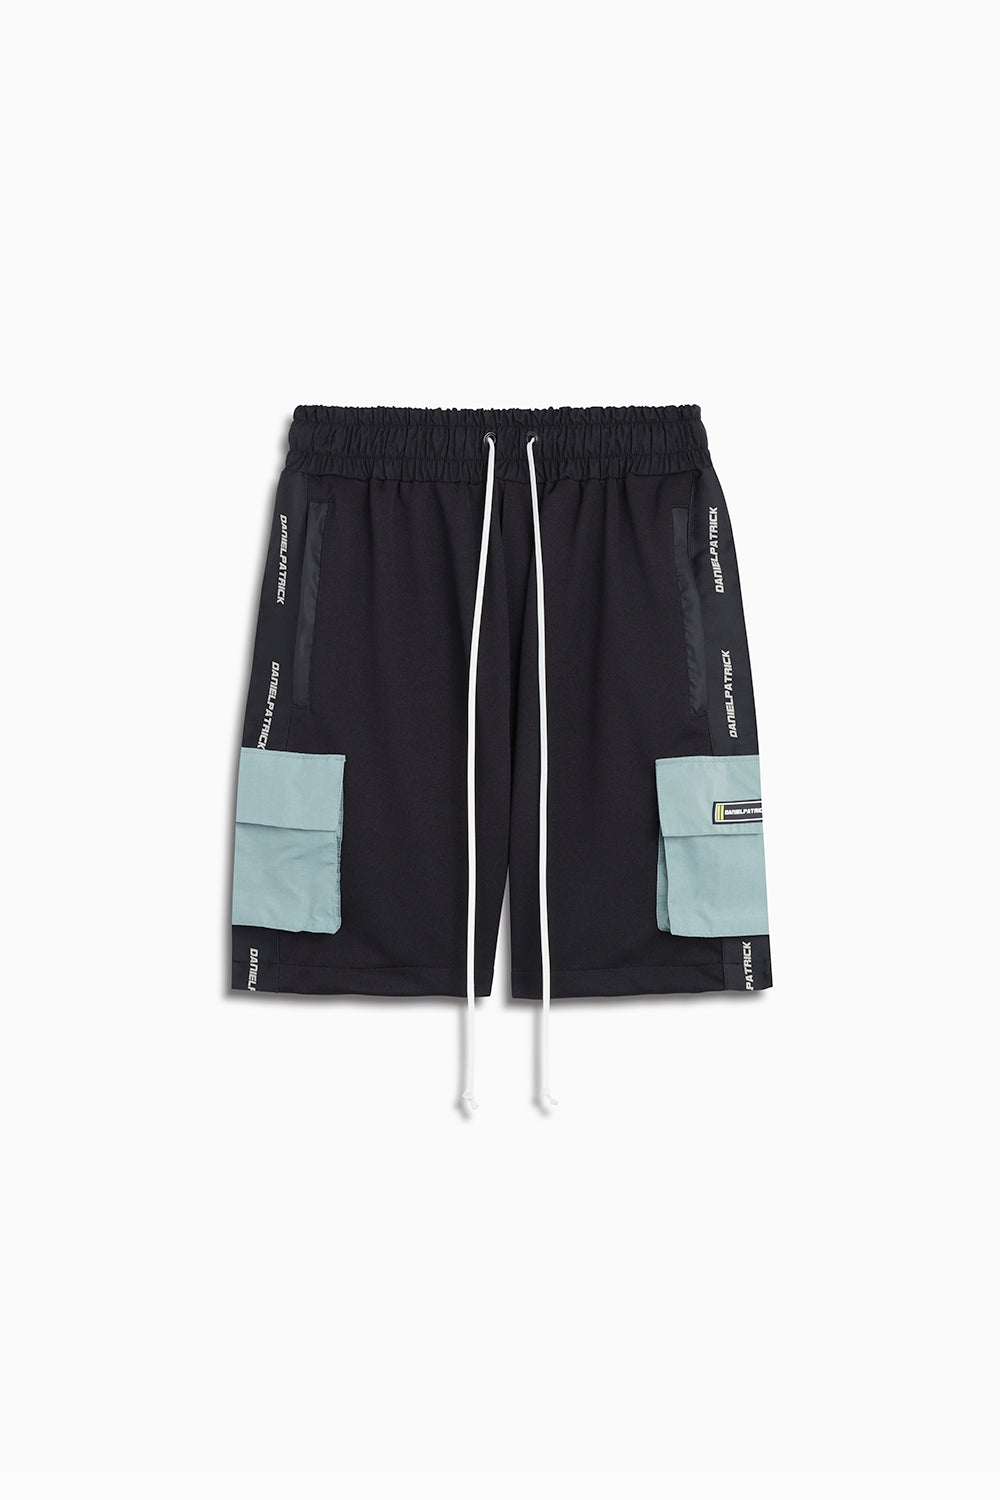 cargo gym short in black/sea foam by daniel patrick